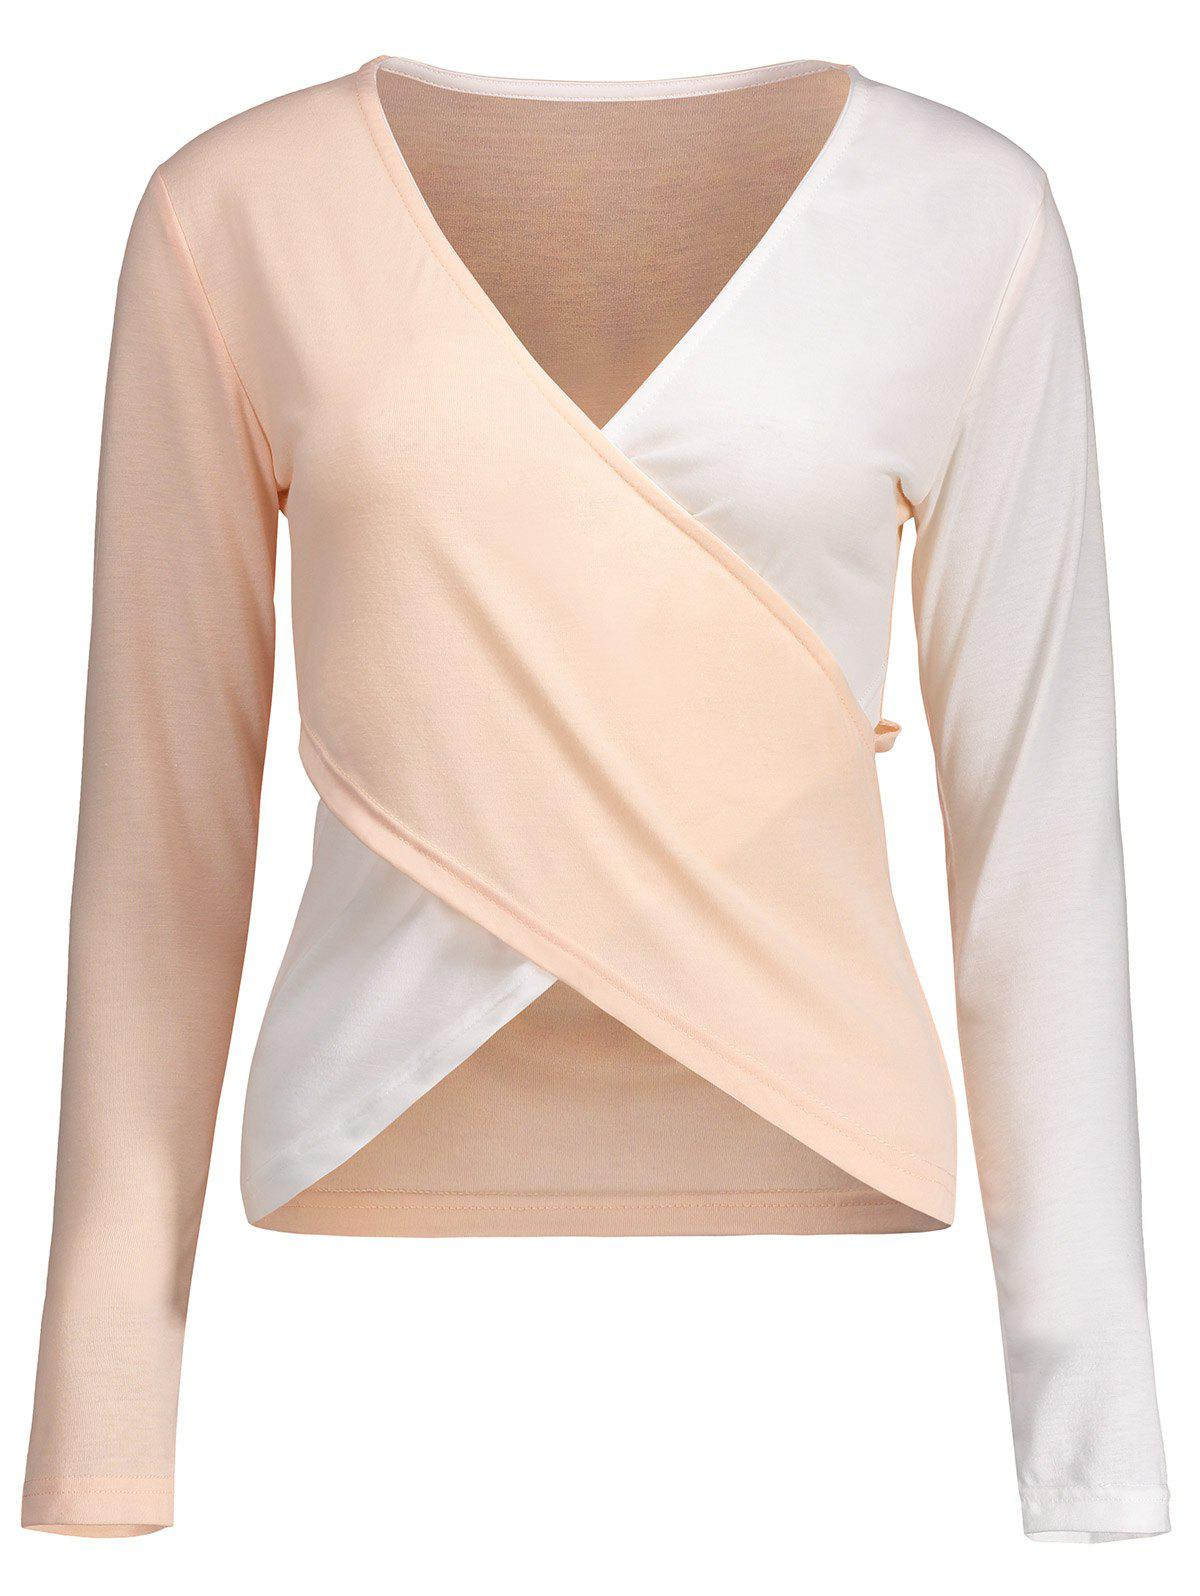 Contraste Cross Plongeant Neck Tee - Rose Pâle M